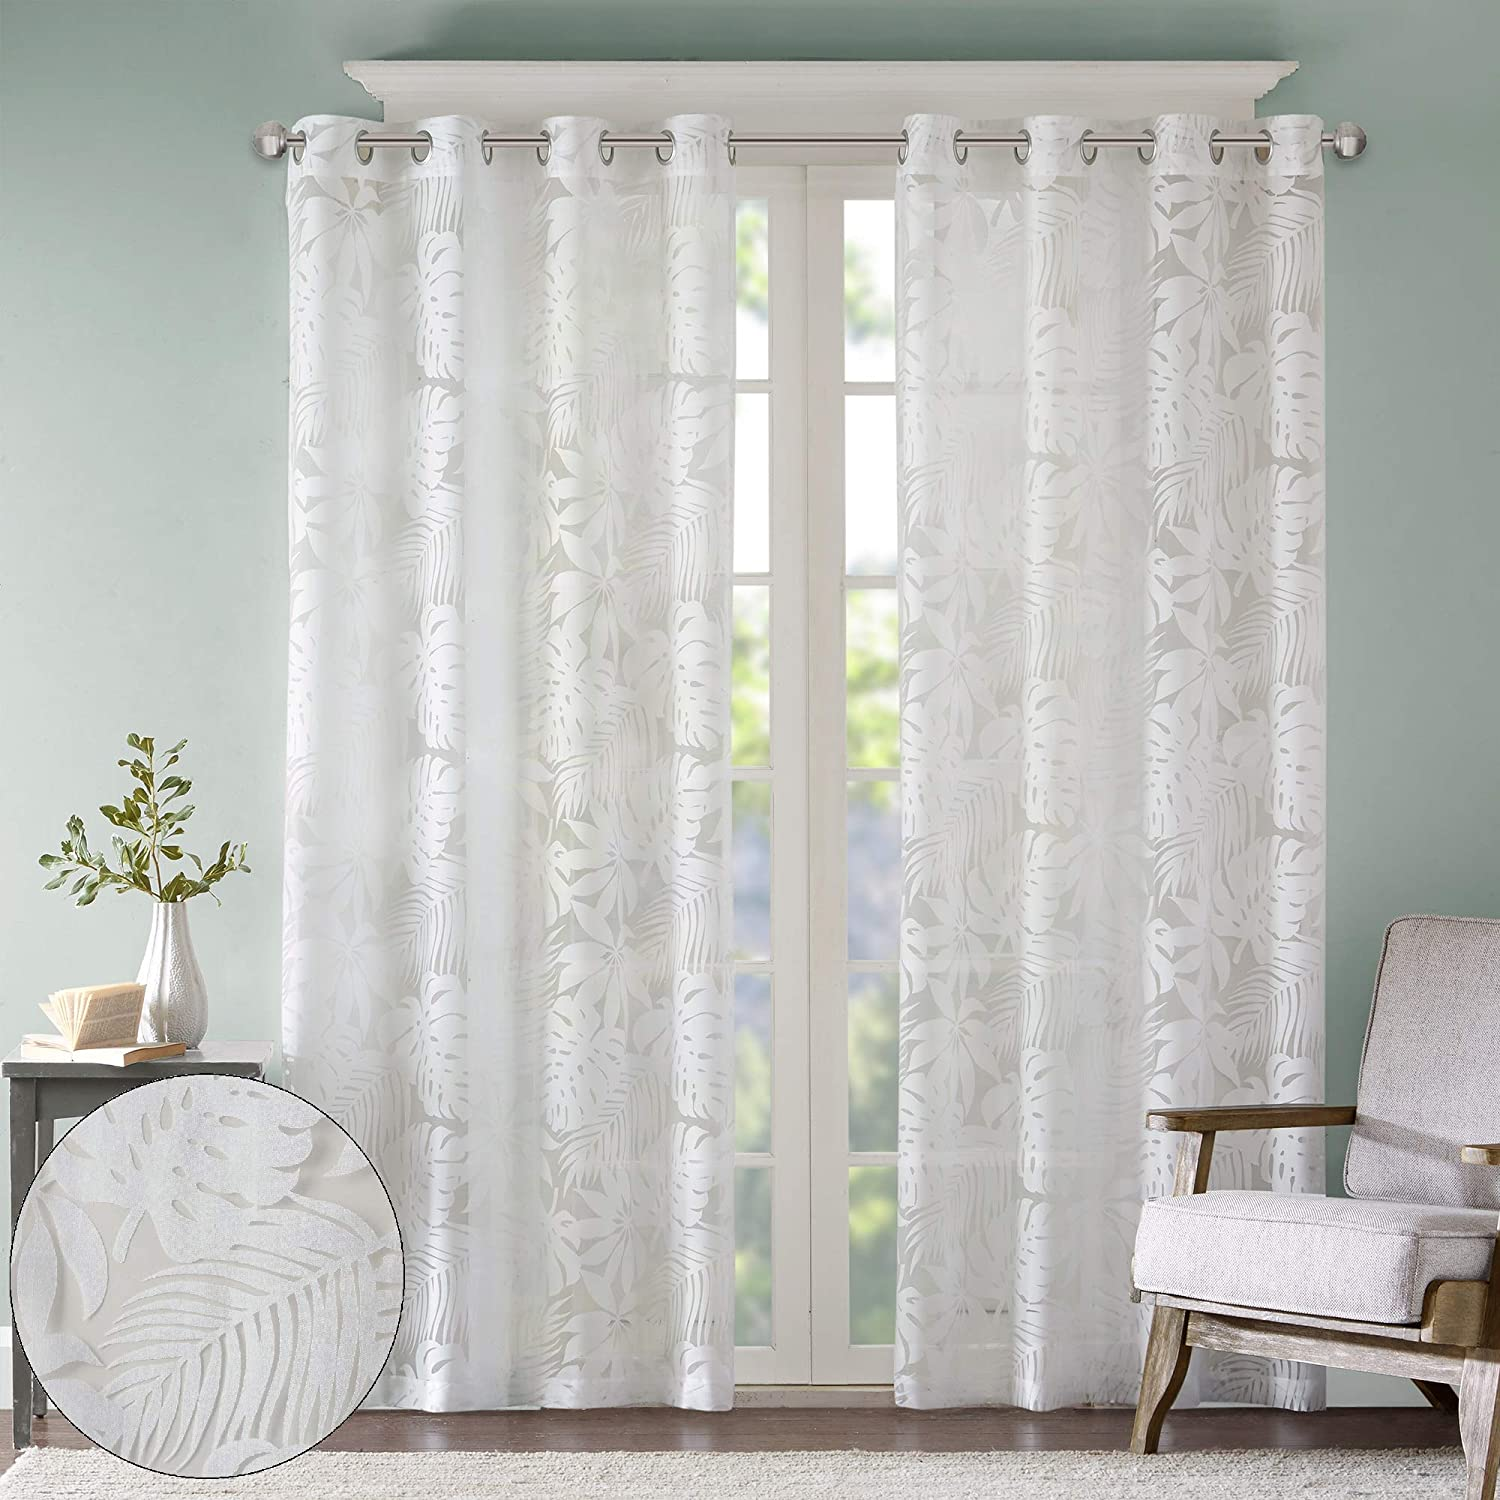 Amazon Com Madison Park Botanical Sheer Curtains For Bedroom Modern Contemporary Linen Grommet Living Room Nature Summer Fashion Panel 50x84 Tropical White Home Kitchen